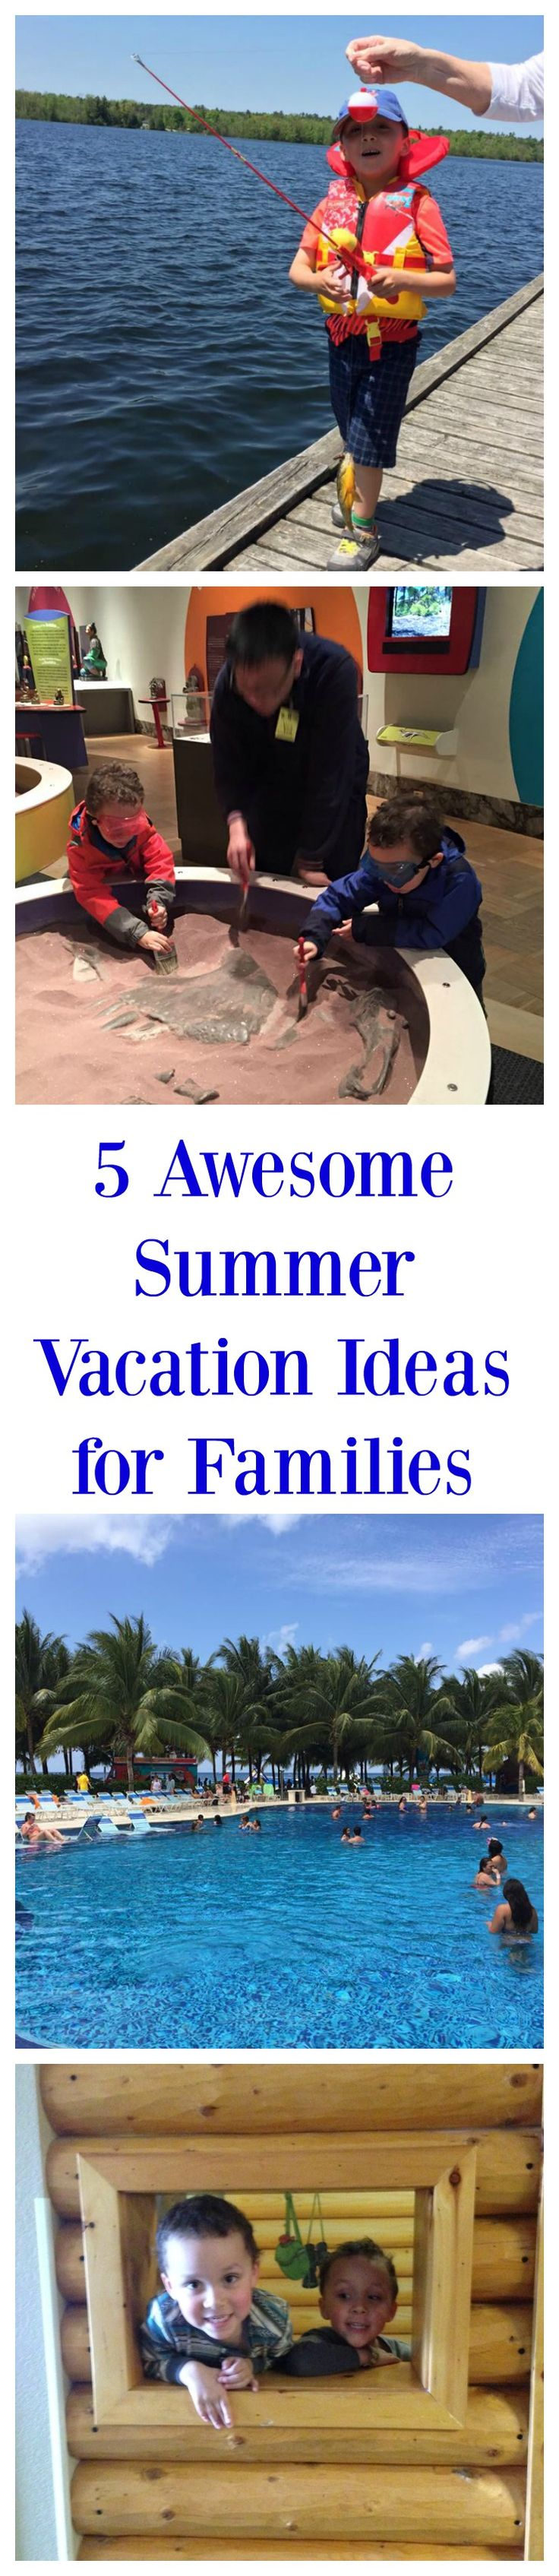 5 Awesome Family Summer Vacation Ideas - Family Food And Travel